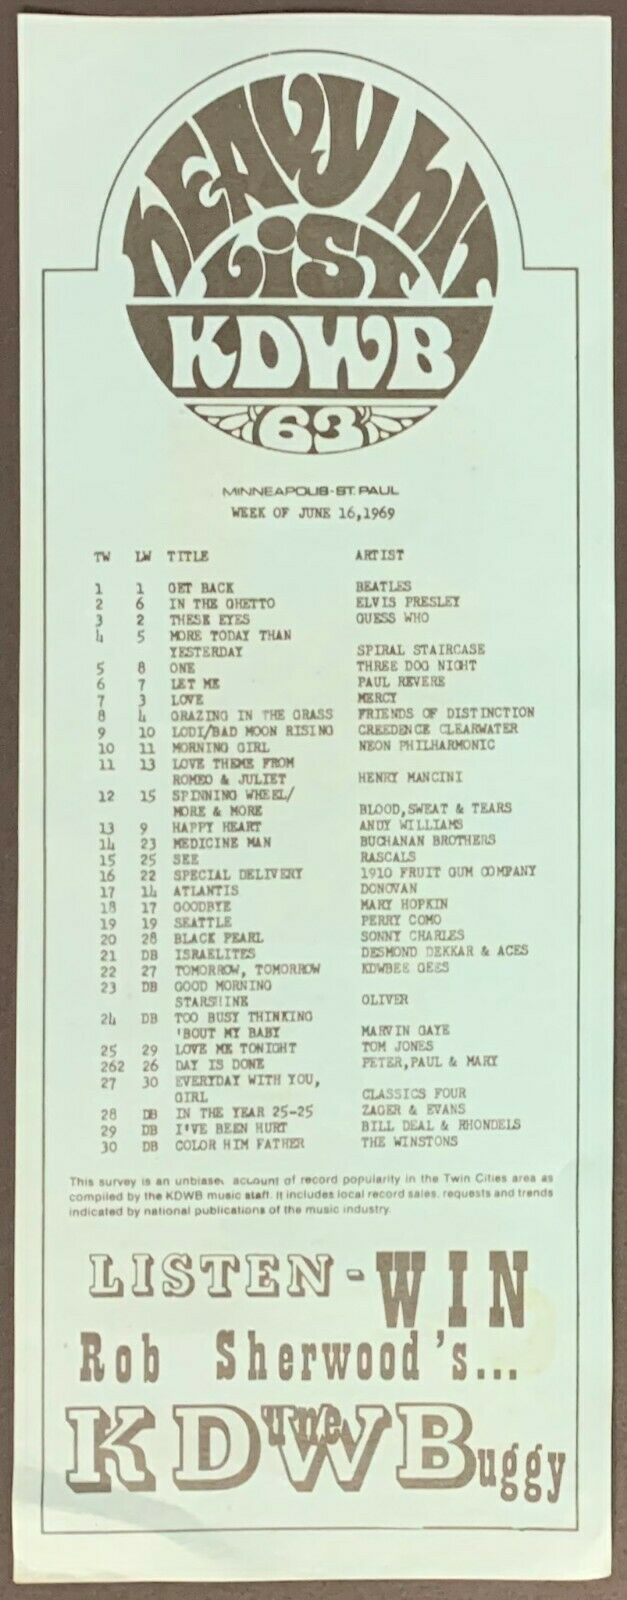 1969 KDWB Chart Radio Survey Minneapolis St. Paul Music Beatles Get Back Topped